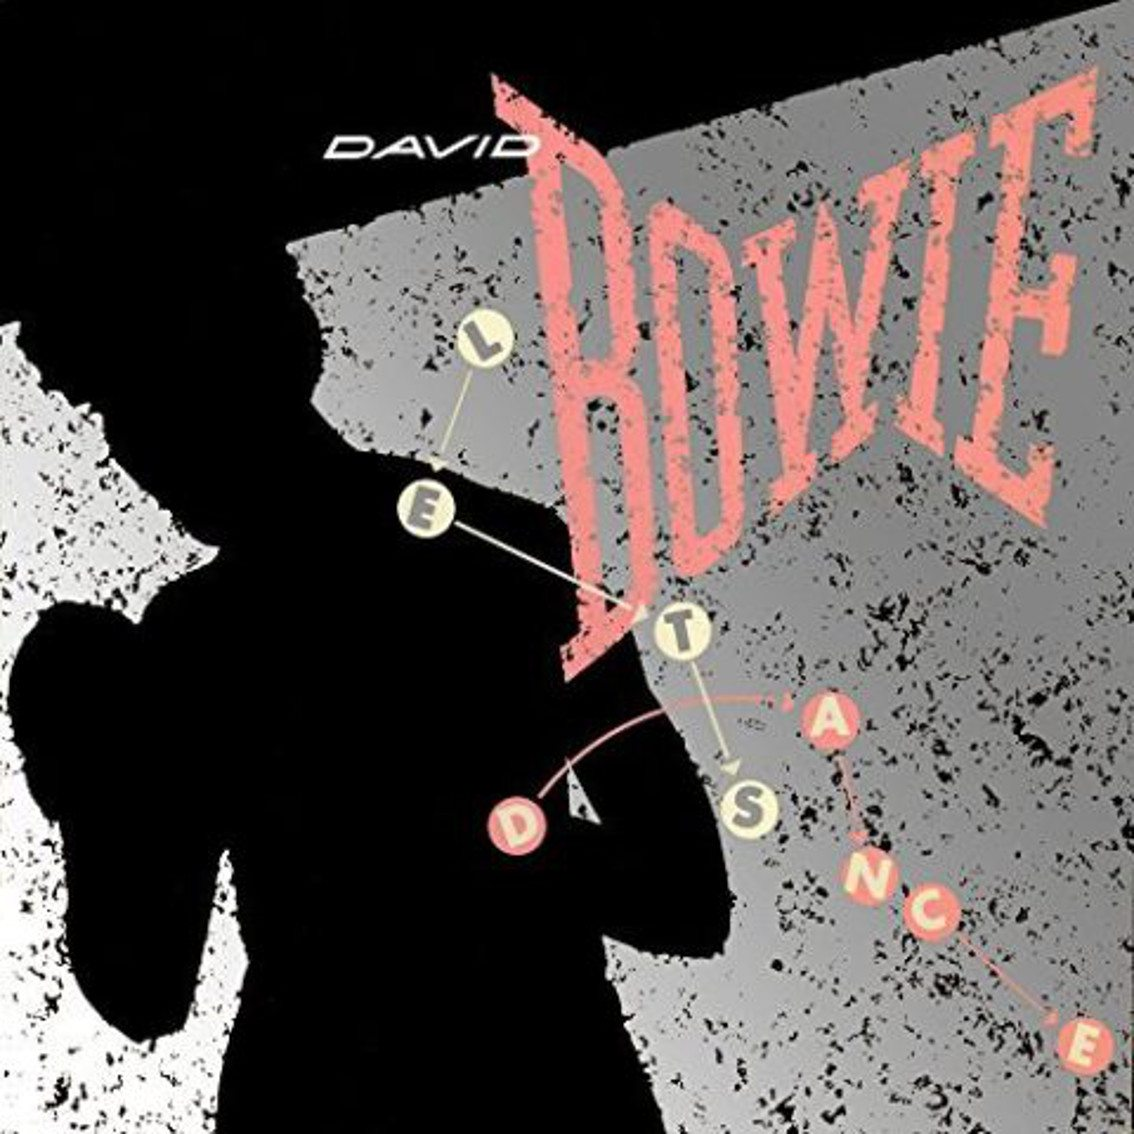 David Bowie demo 'Let's Dance' released - listen here